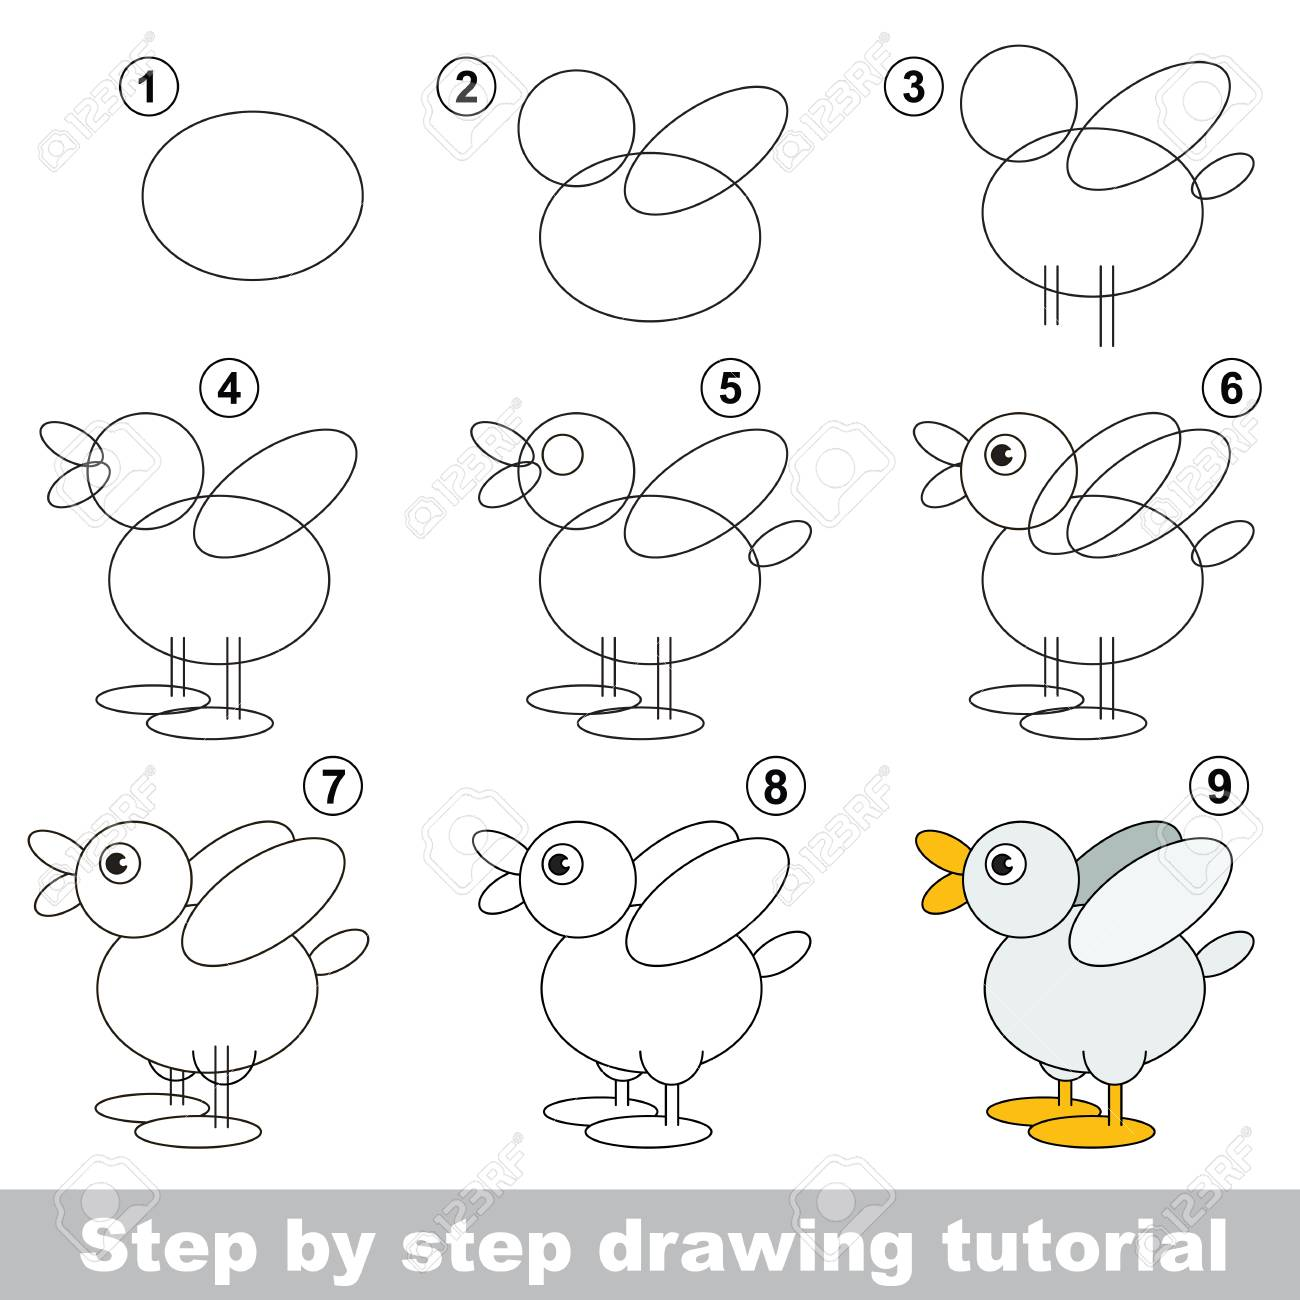 Kid education and gaming - the drawing tutorial for preschool..